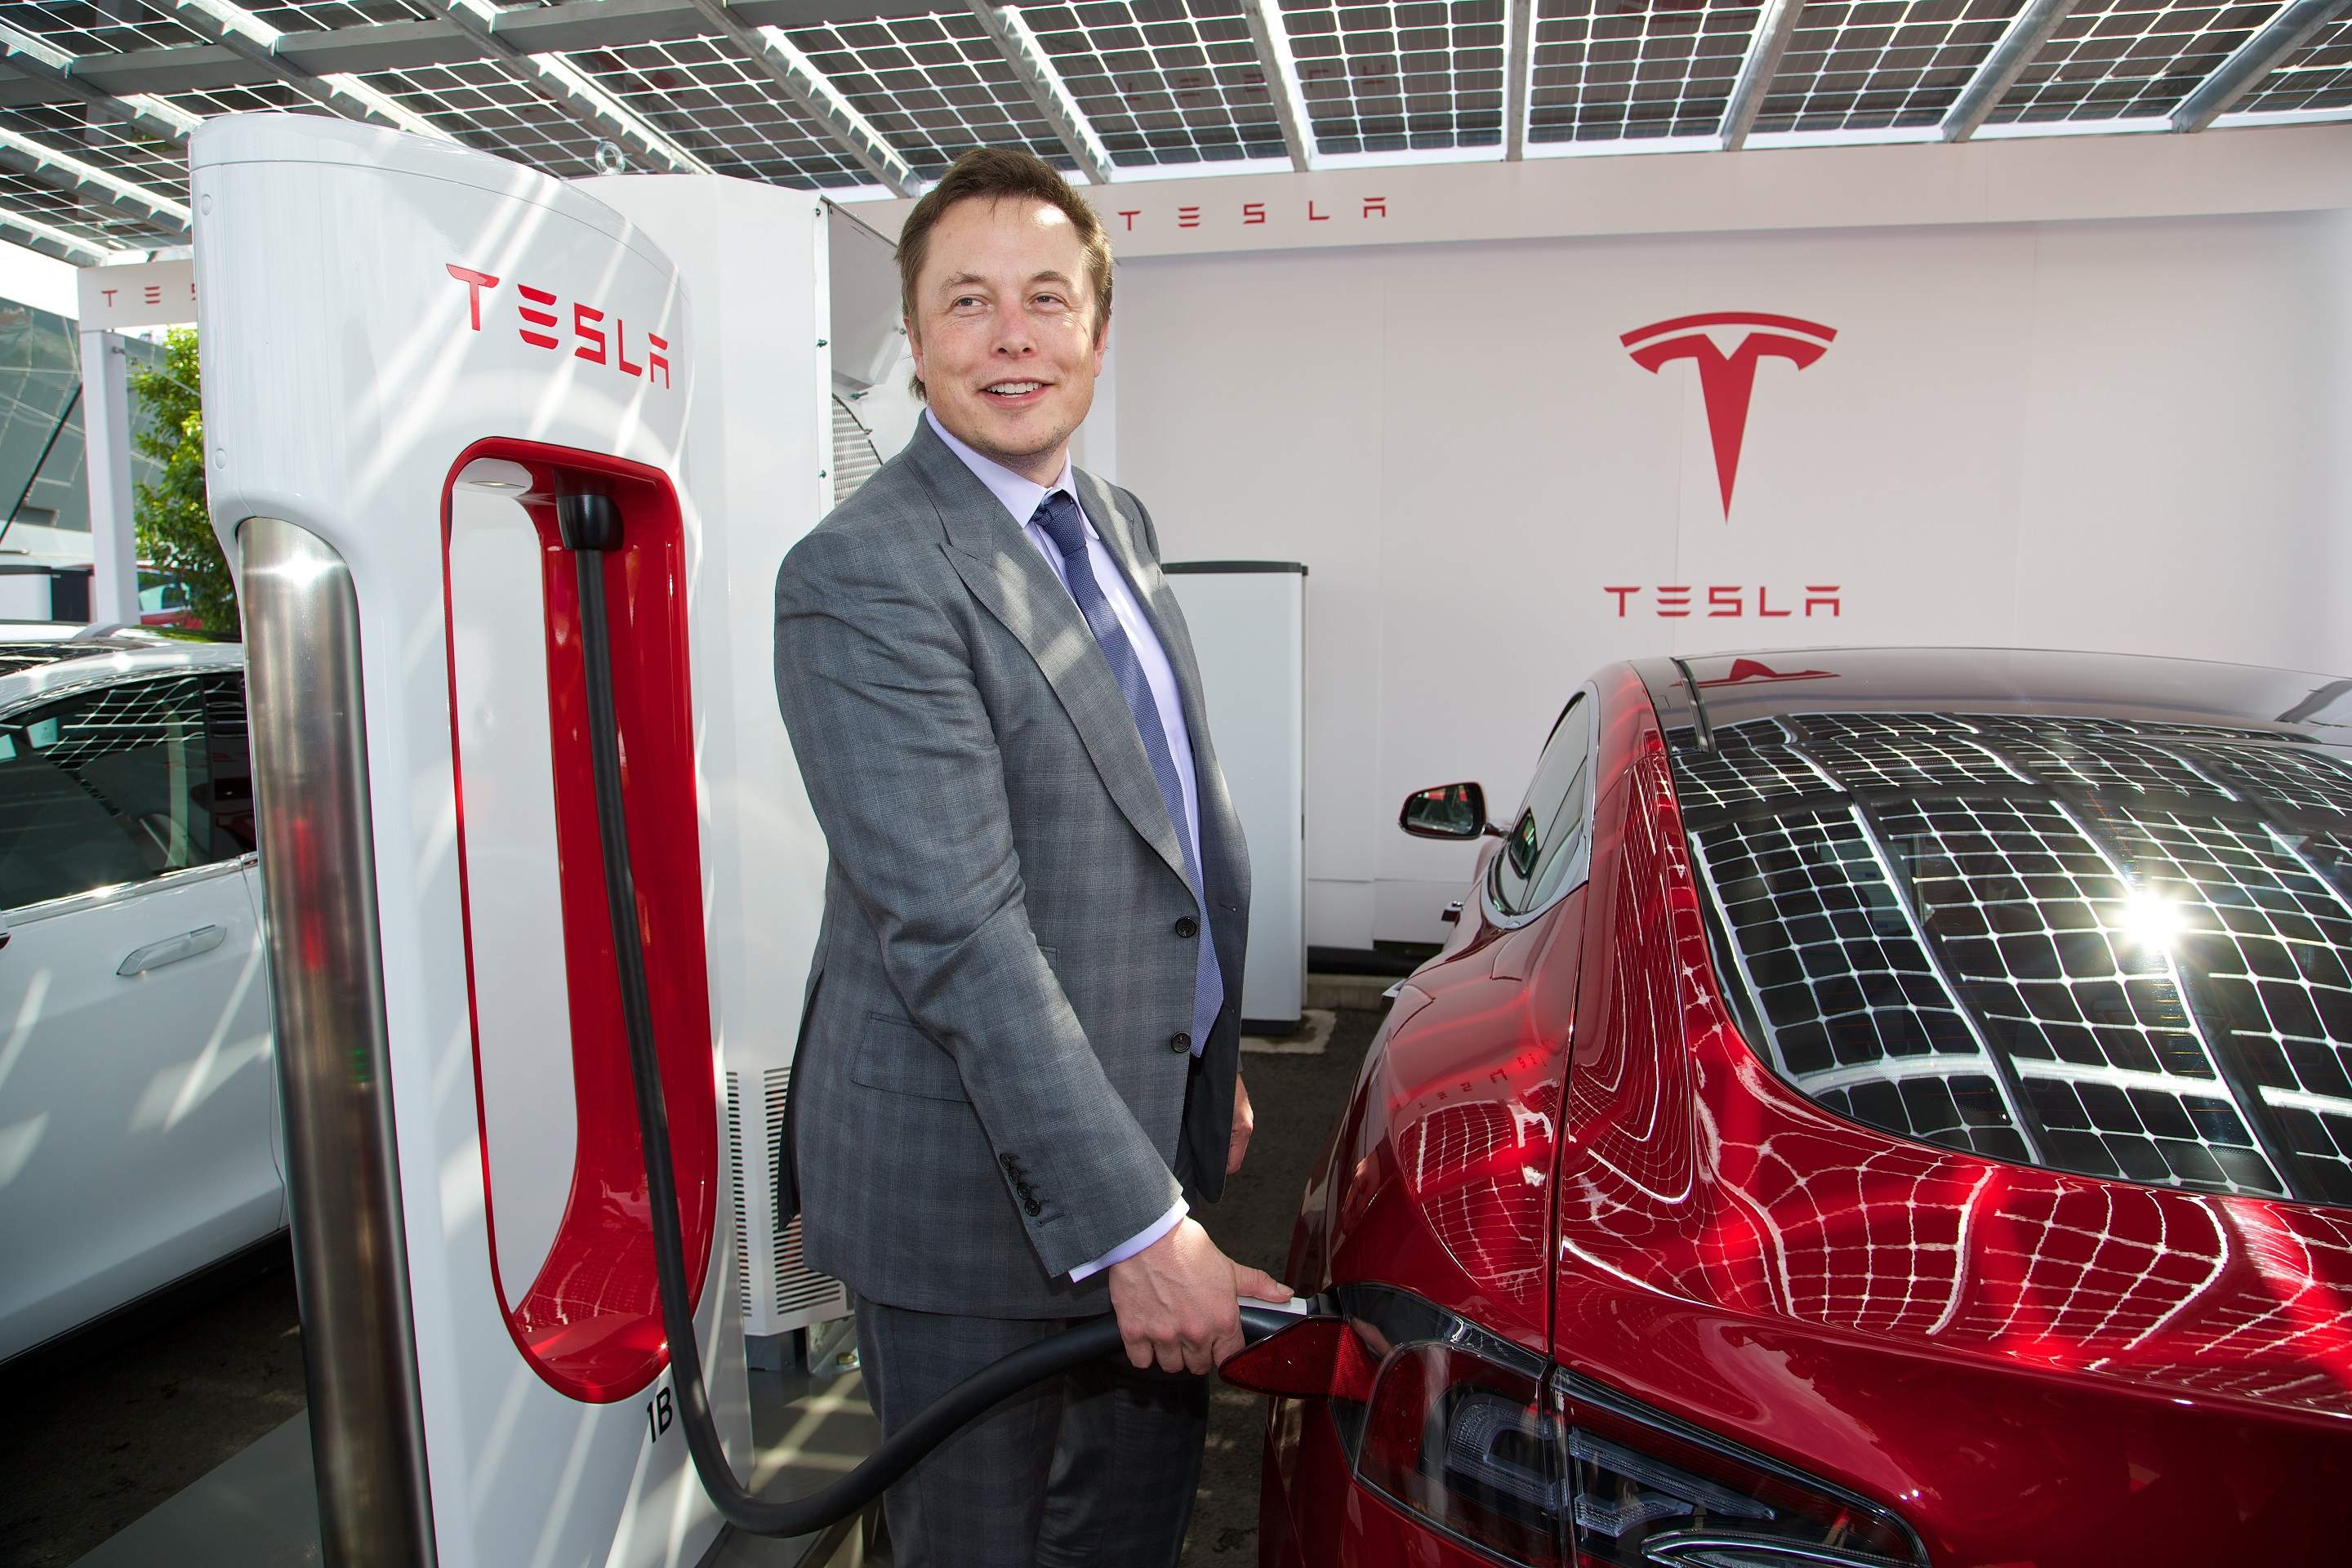 Tesla S Elon Musk Asks World Leaders For A Carbon Tax